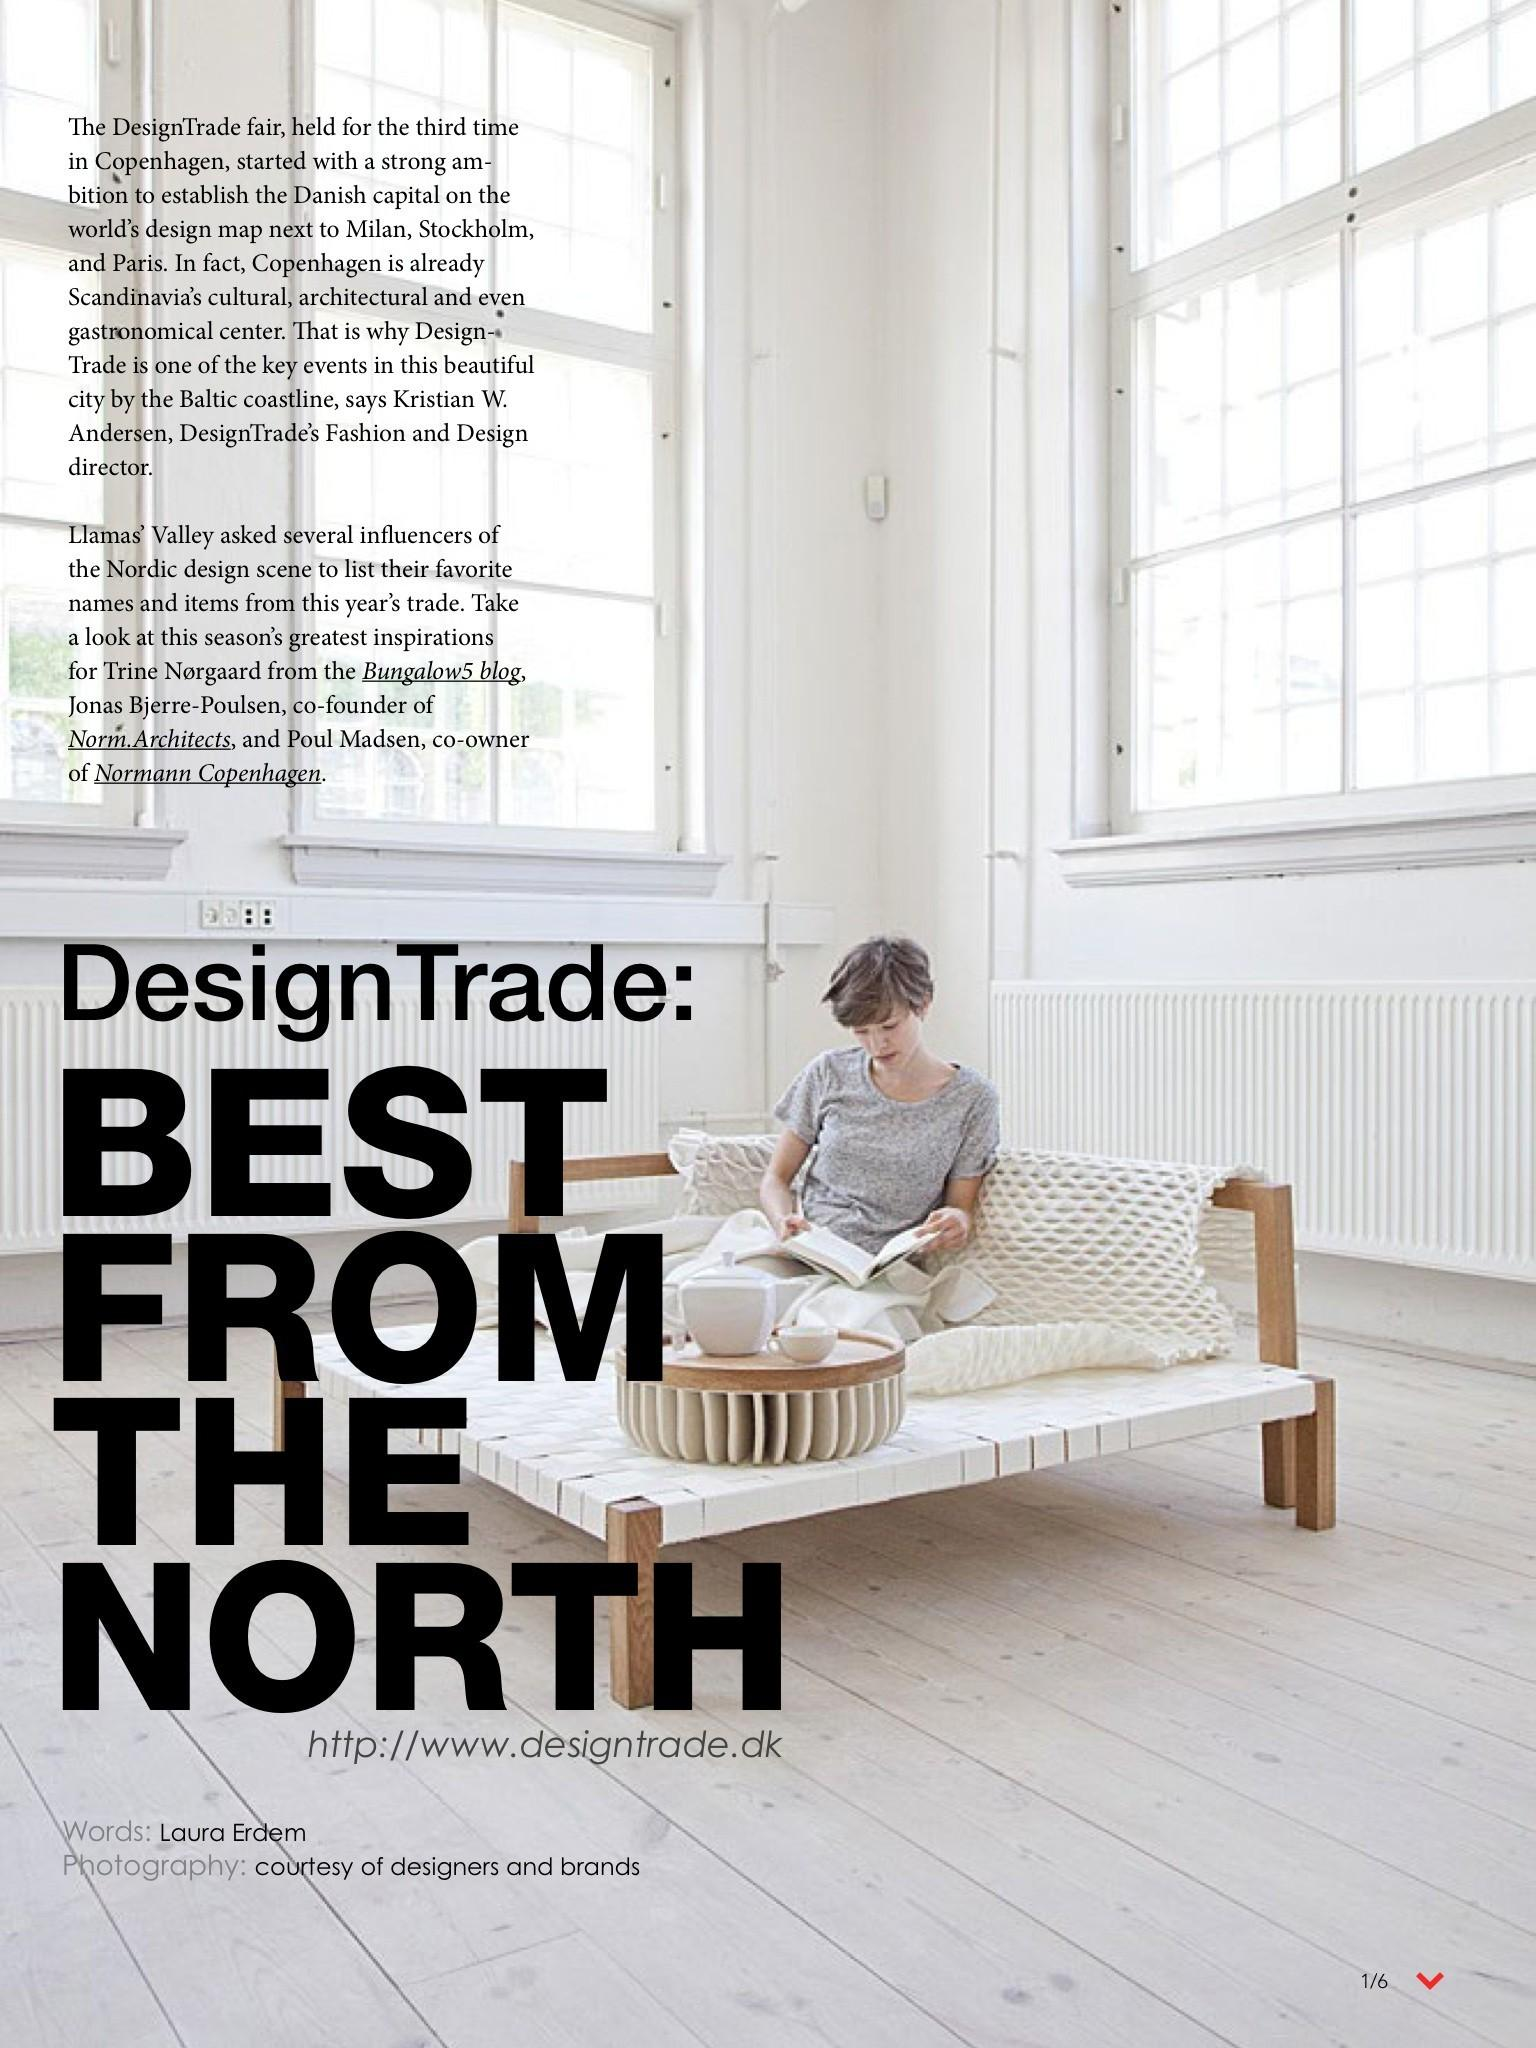 Nordic Function One Norm Architects Favorites Brand